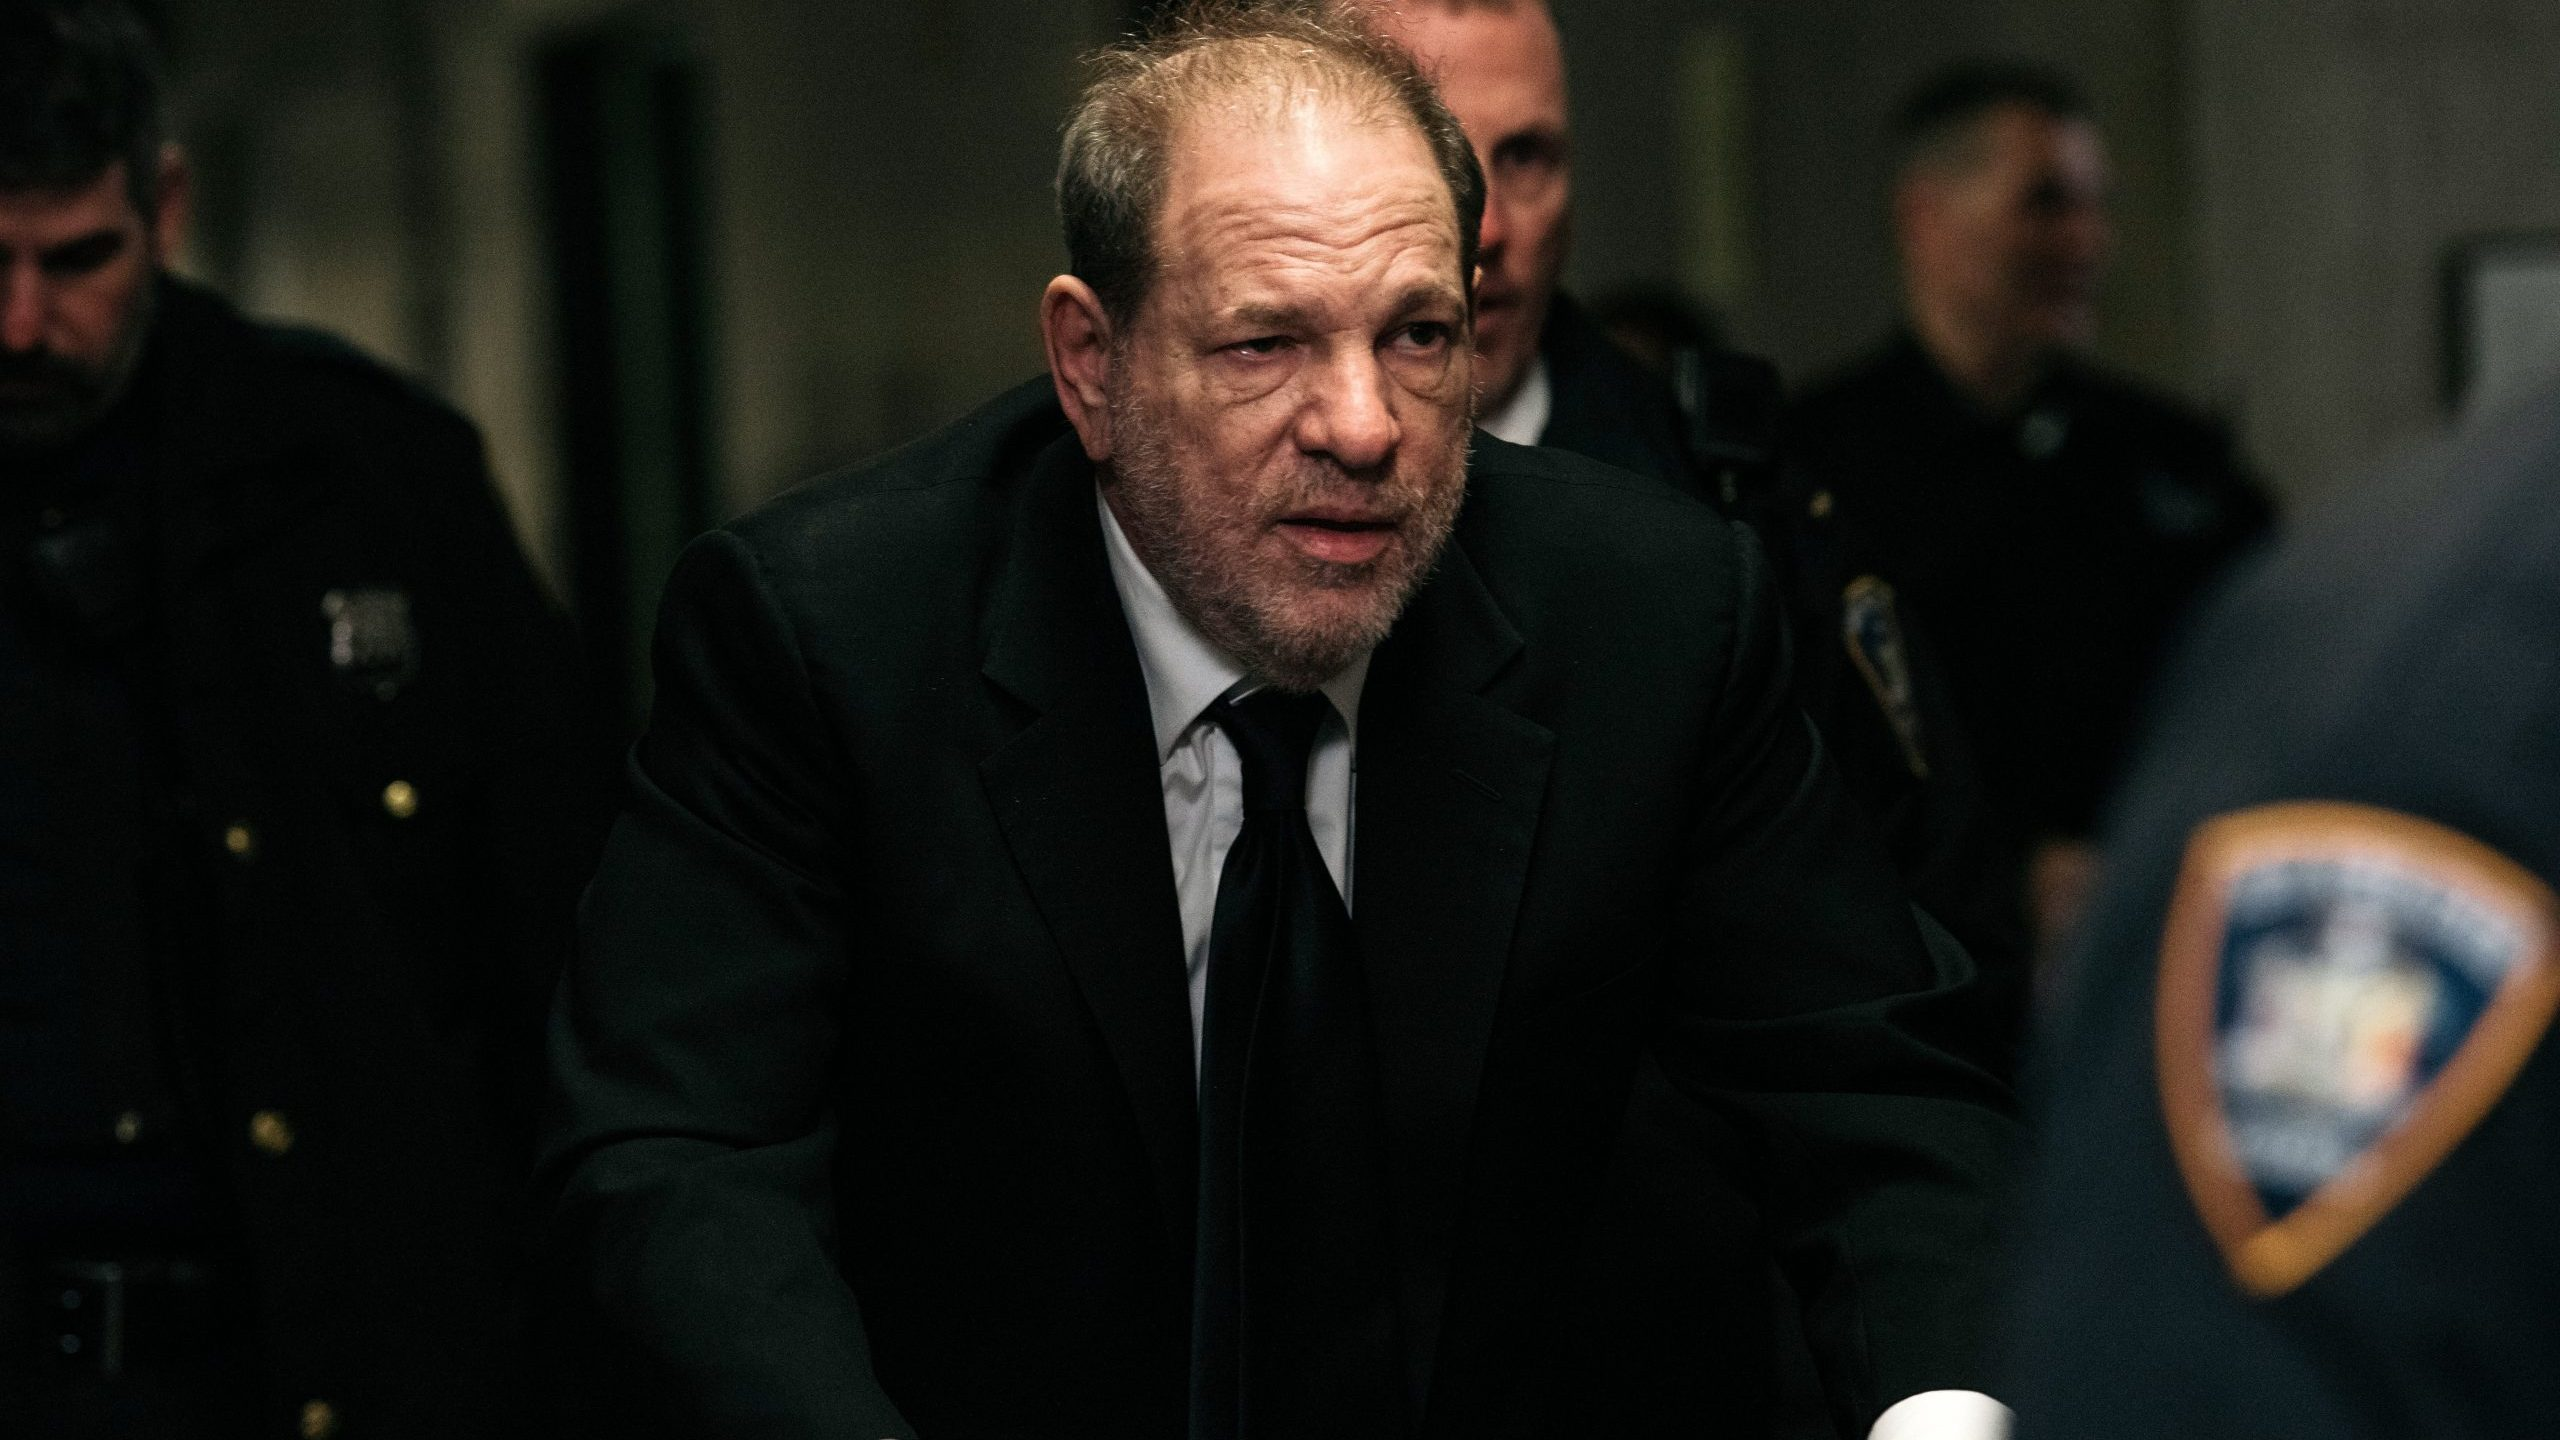 Harvey Weinstein enters New York City Criminal Court for his sex crimes trial on Jan. 16, 2020, in New York City. (Credit: Scott Heins/Getty Images)